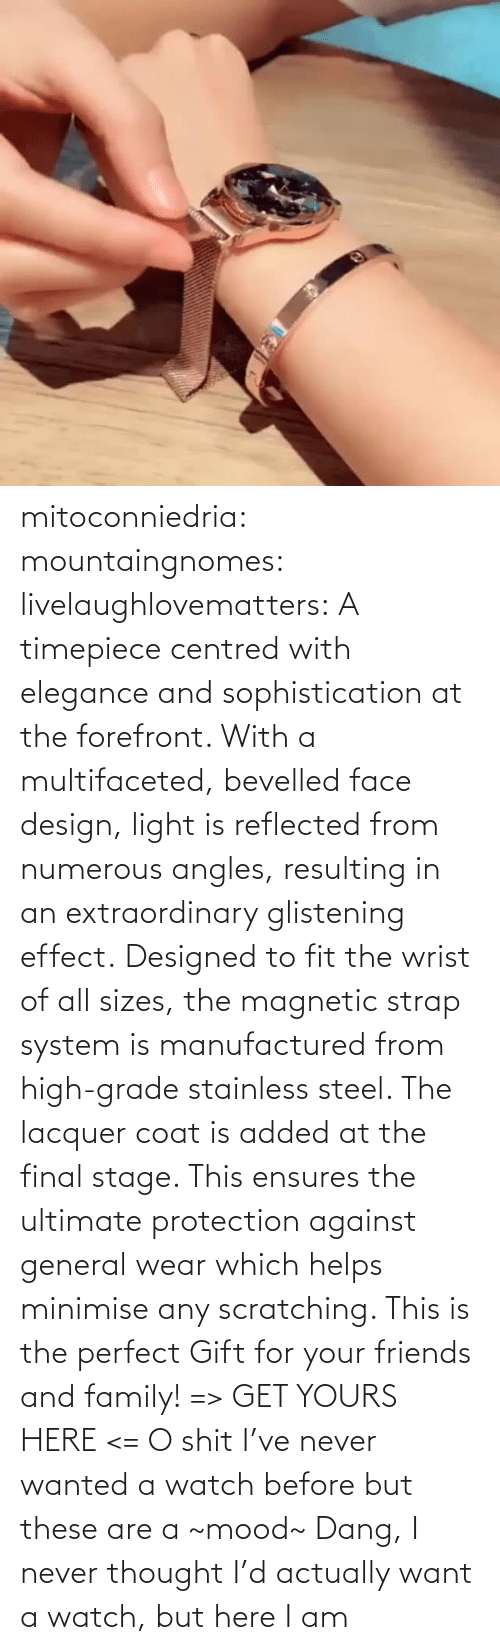 Helps: mitoconniedria: mountaingnomes:   livelaughlovematters:  A timepiece centred with elegance and sophistication at the forefront. With a multifaceted, bevelled face design, light is reflected from numerous angles, resulting in an extraordinary glistening effect. Designed to fit the wrist of all sizes, the magnetic strap system is manufactured from high-grade stainless steel. The lacquer coat is added at the final stage. This ensures the ultimate protection against general wear which helps minimise any scratching. This is the perfect Gift for your friends and family! => GET YOURS HERE <=  O shit I've never wanted a watch before but these are a ~mood~    Dang, I never thought I'd actually want a watch, but here I am